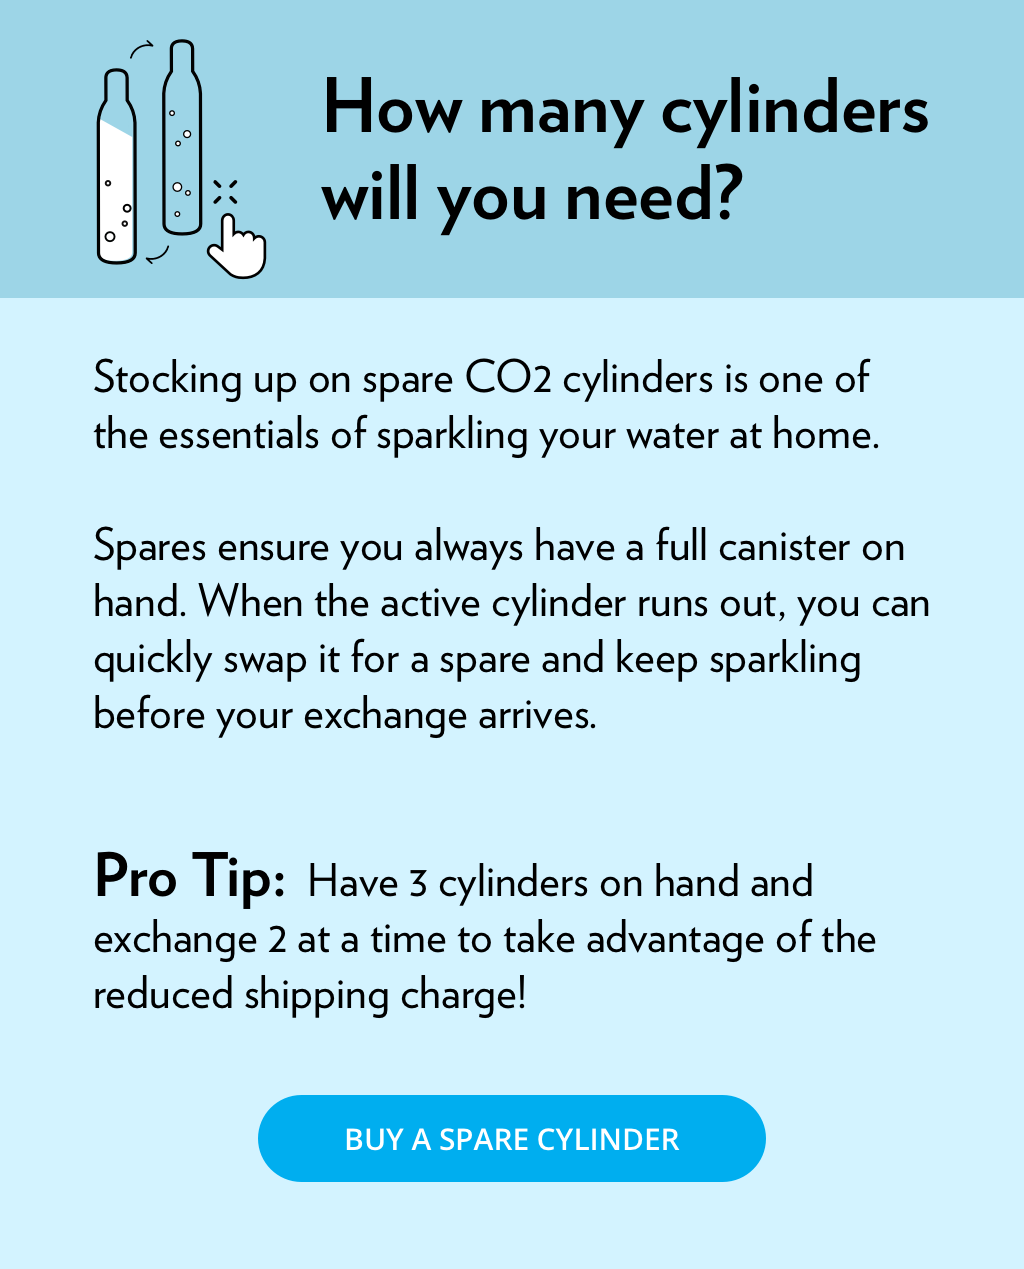 how many CO2 cylinders do you need?